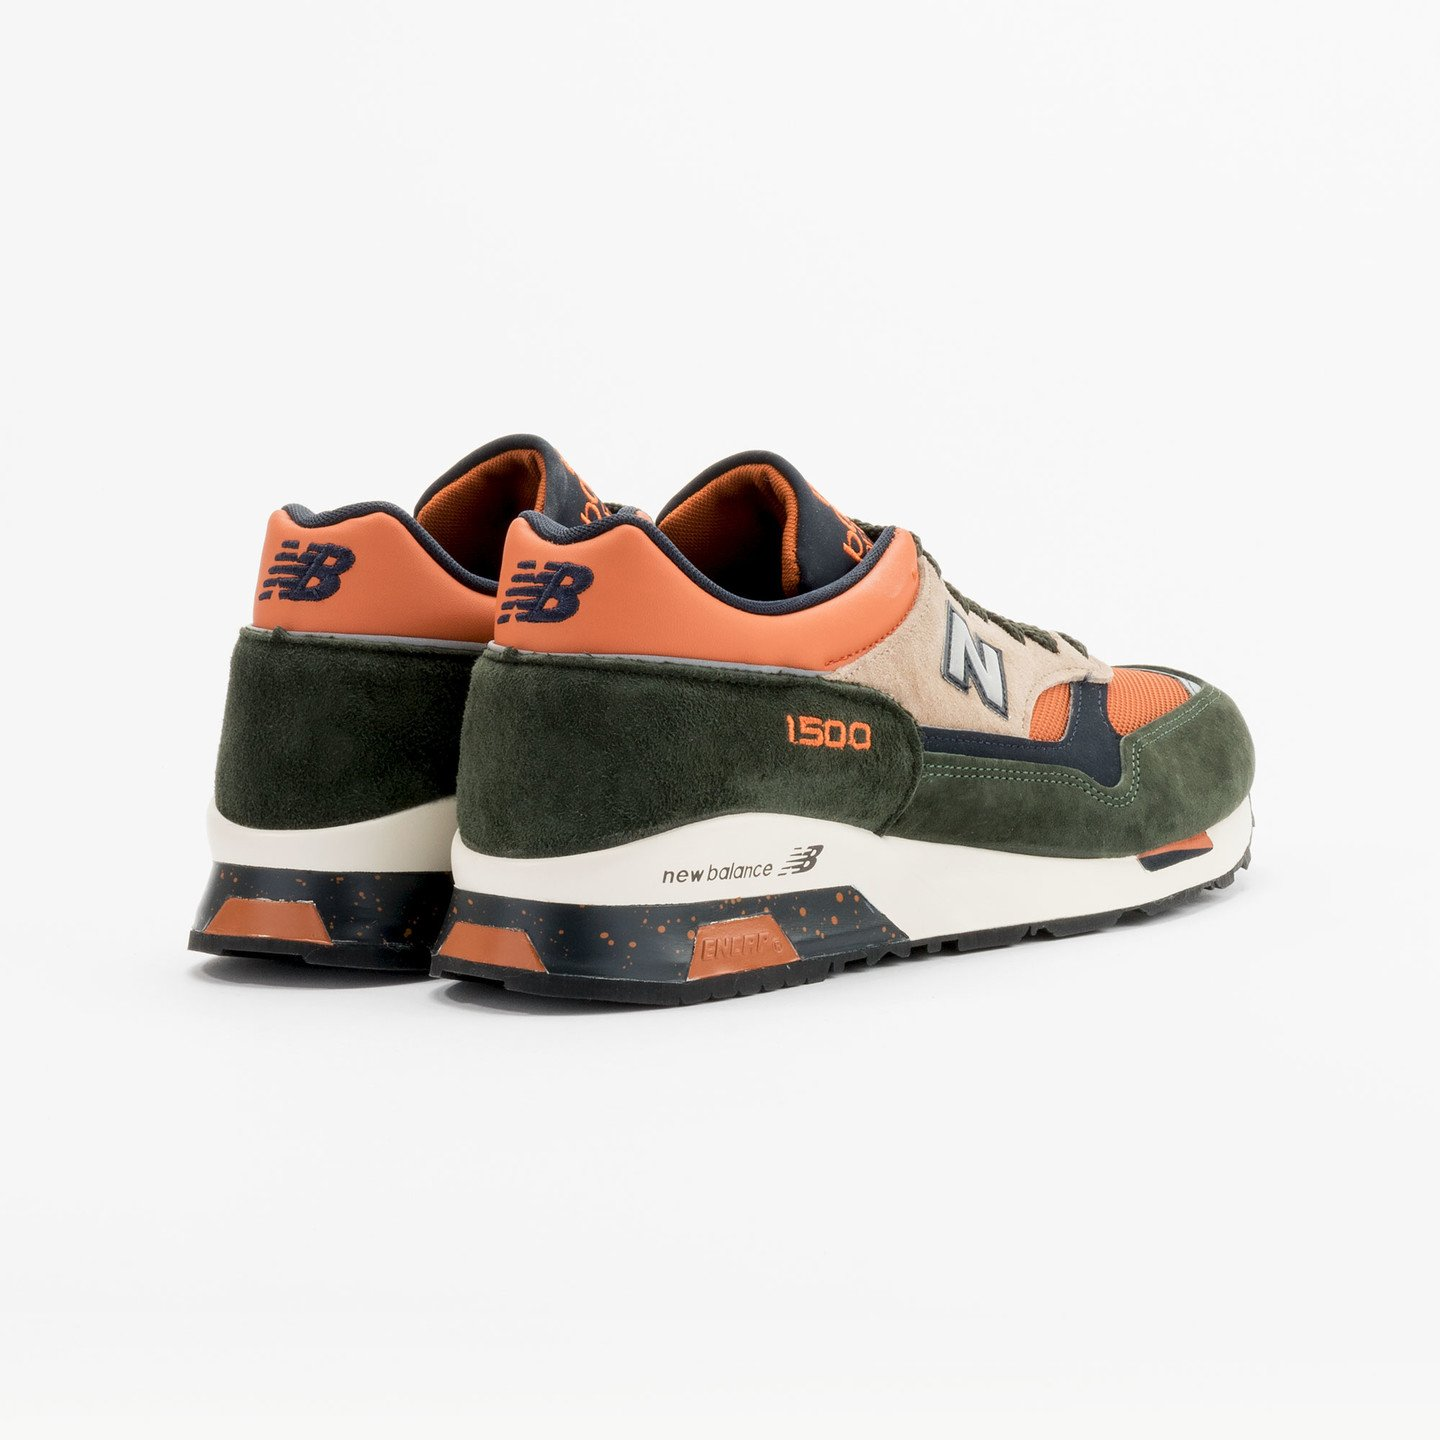 New Balance M1500 RO - Made in England Green / Orange M1500RO-41.5